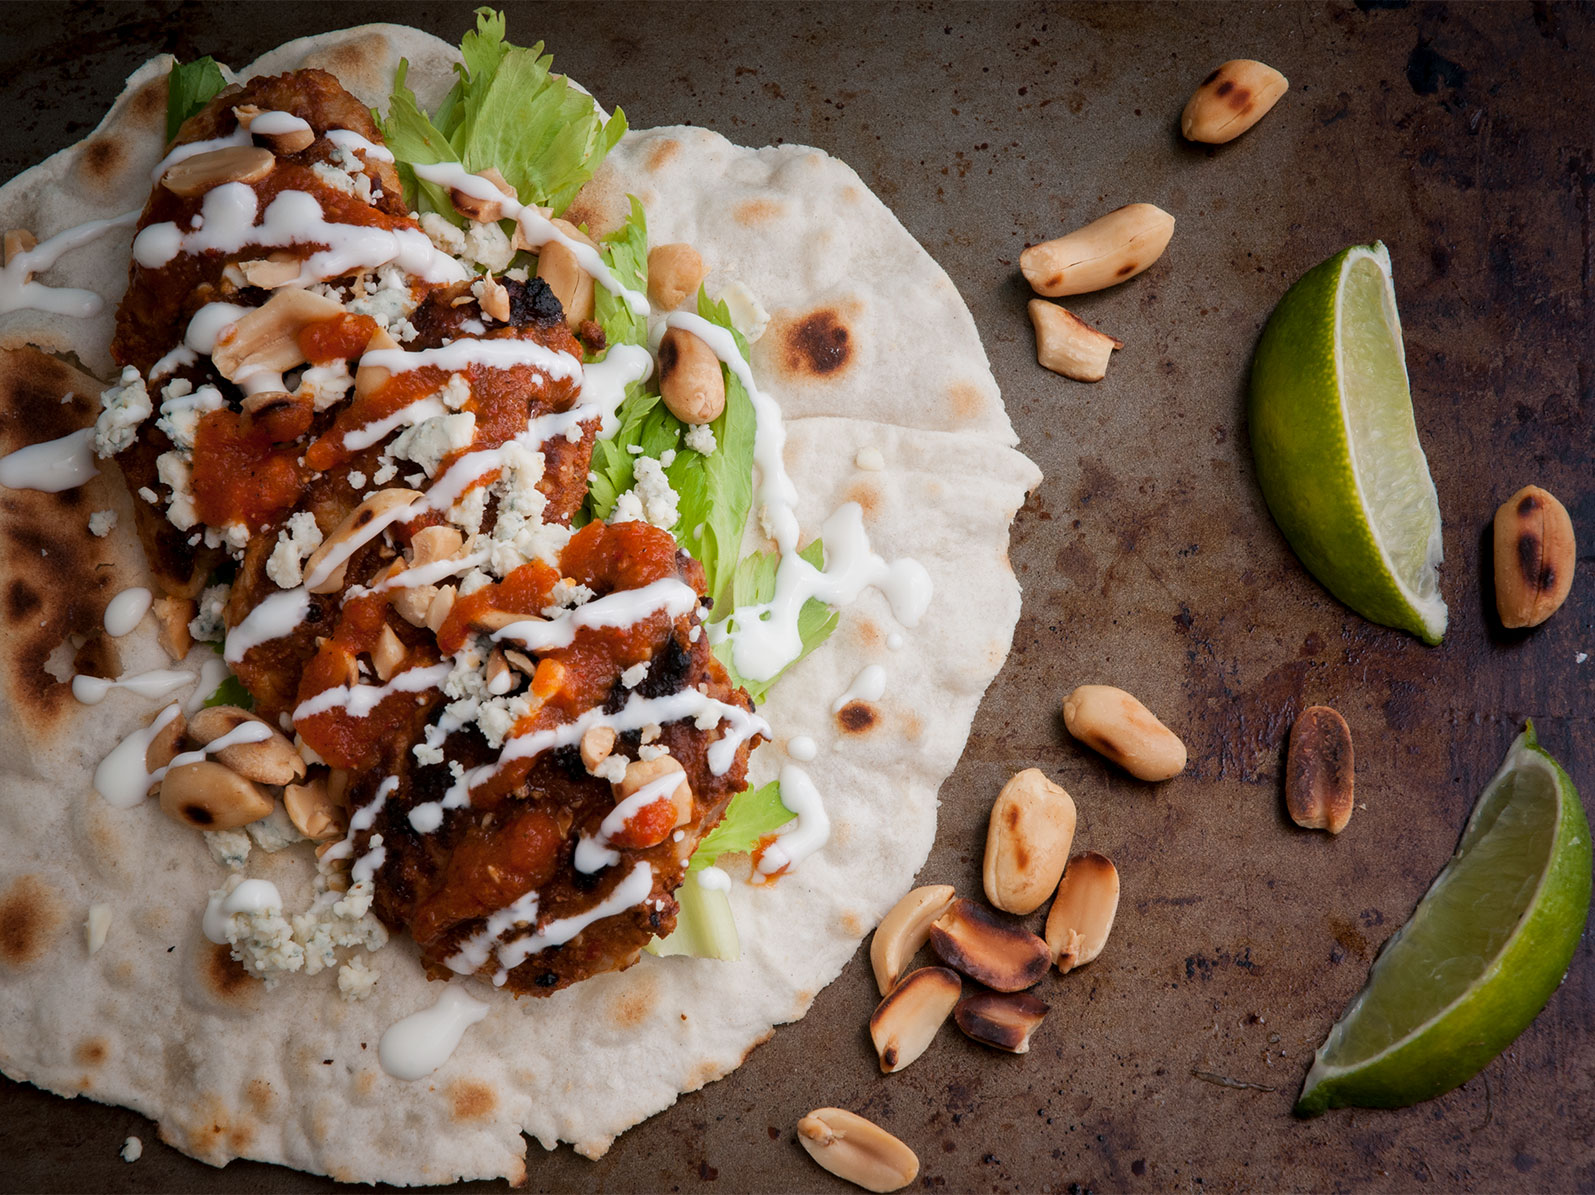 salsa macha drenched wings, sprinkled with blue cheese, crema mexicana, peanuts & lime juice